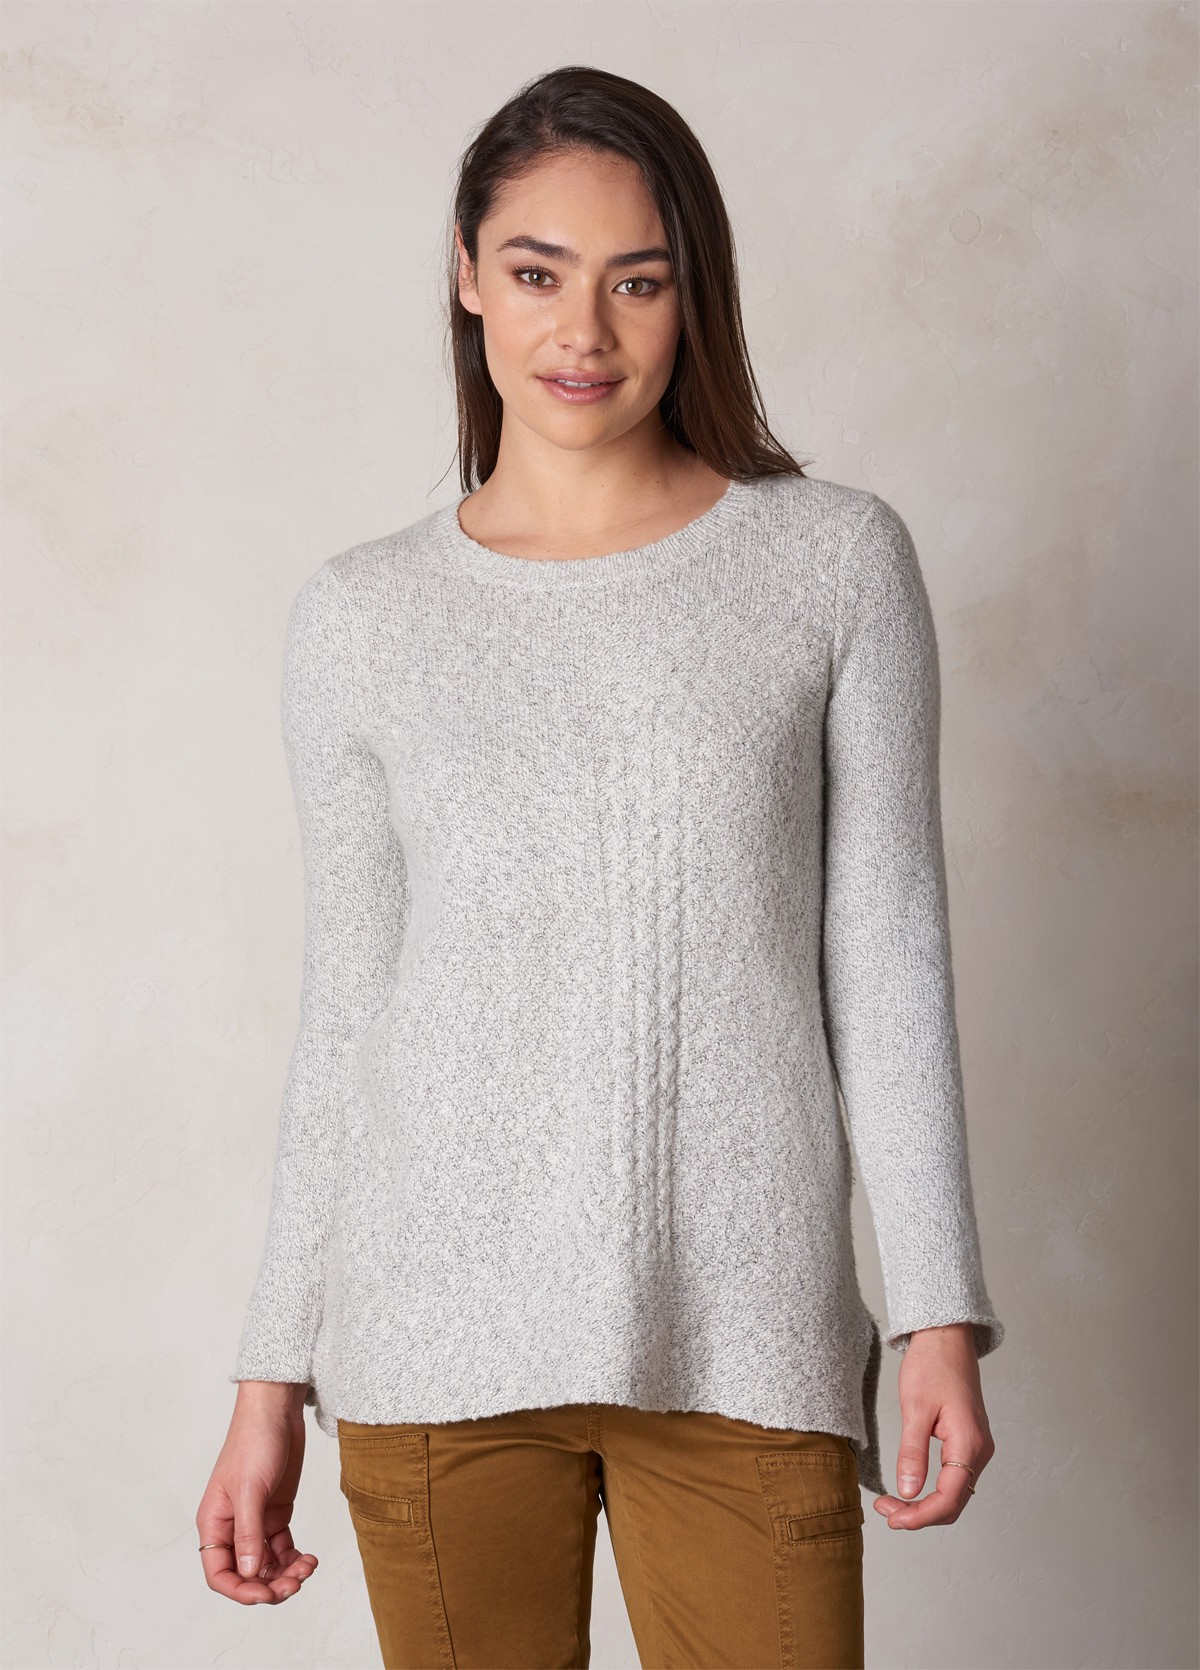 tunic sweaters view larger image rfycmnn